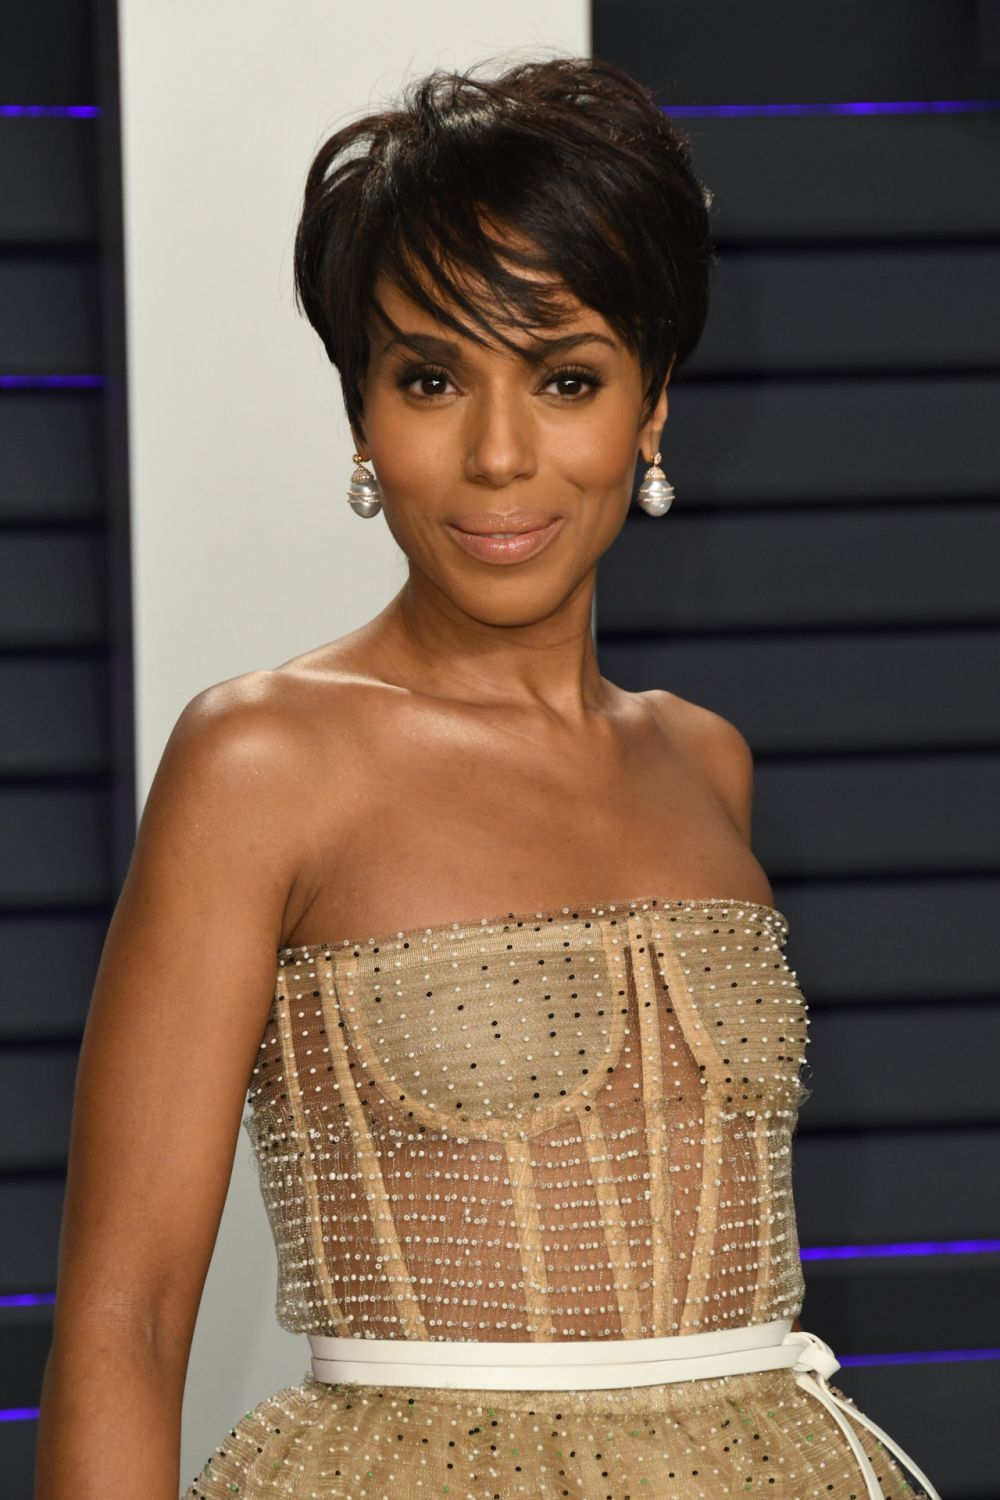 La actriz Kerry Washington con su corte pixie con flequillo lateral...